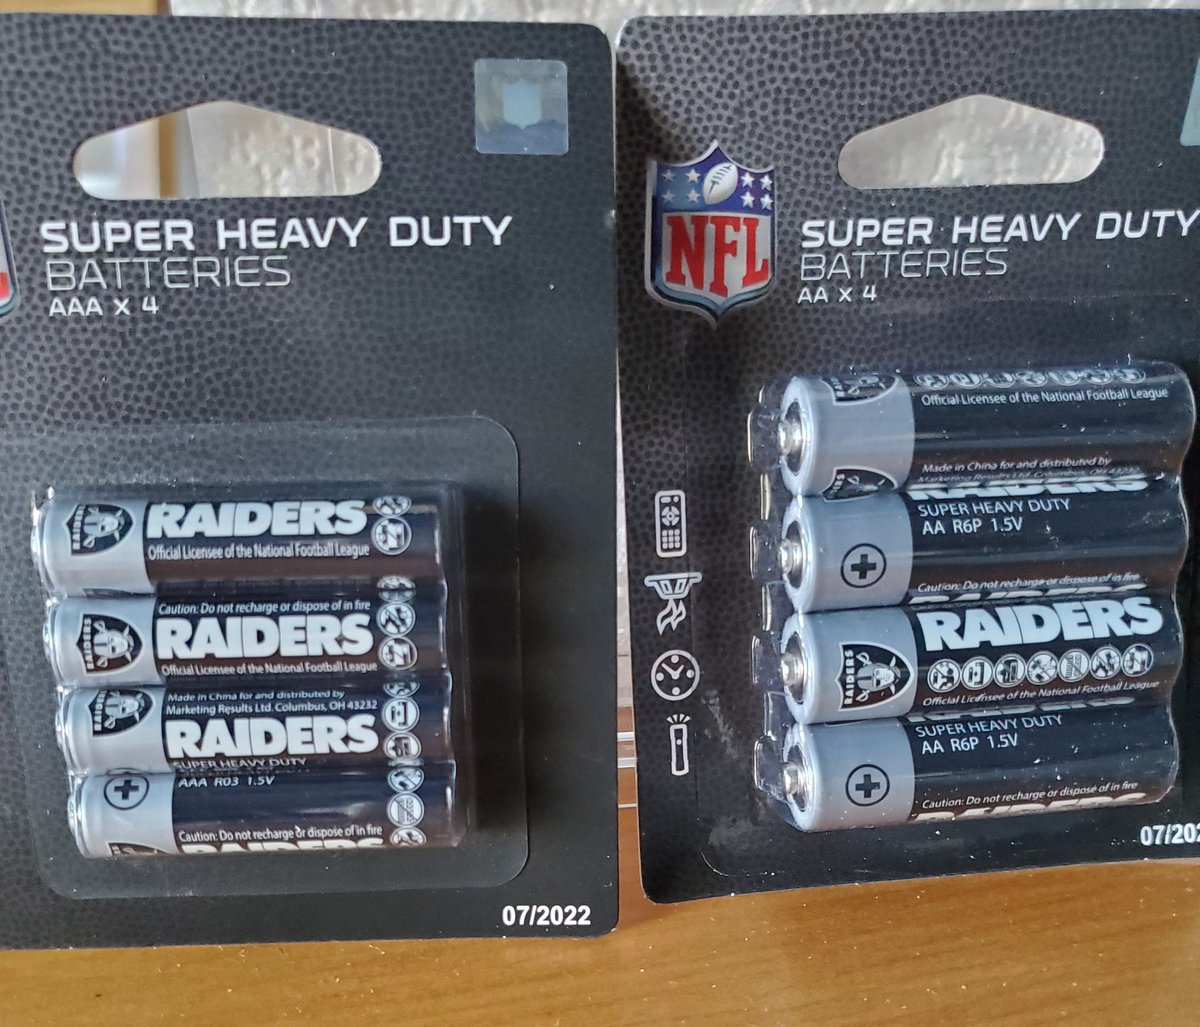 Found at the Dollar Tree today. Had to have them!! #Raiders <br>http://pic.twitter.com/wpe7Zz2uwD